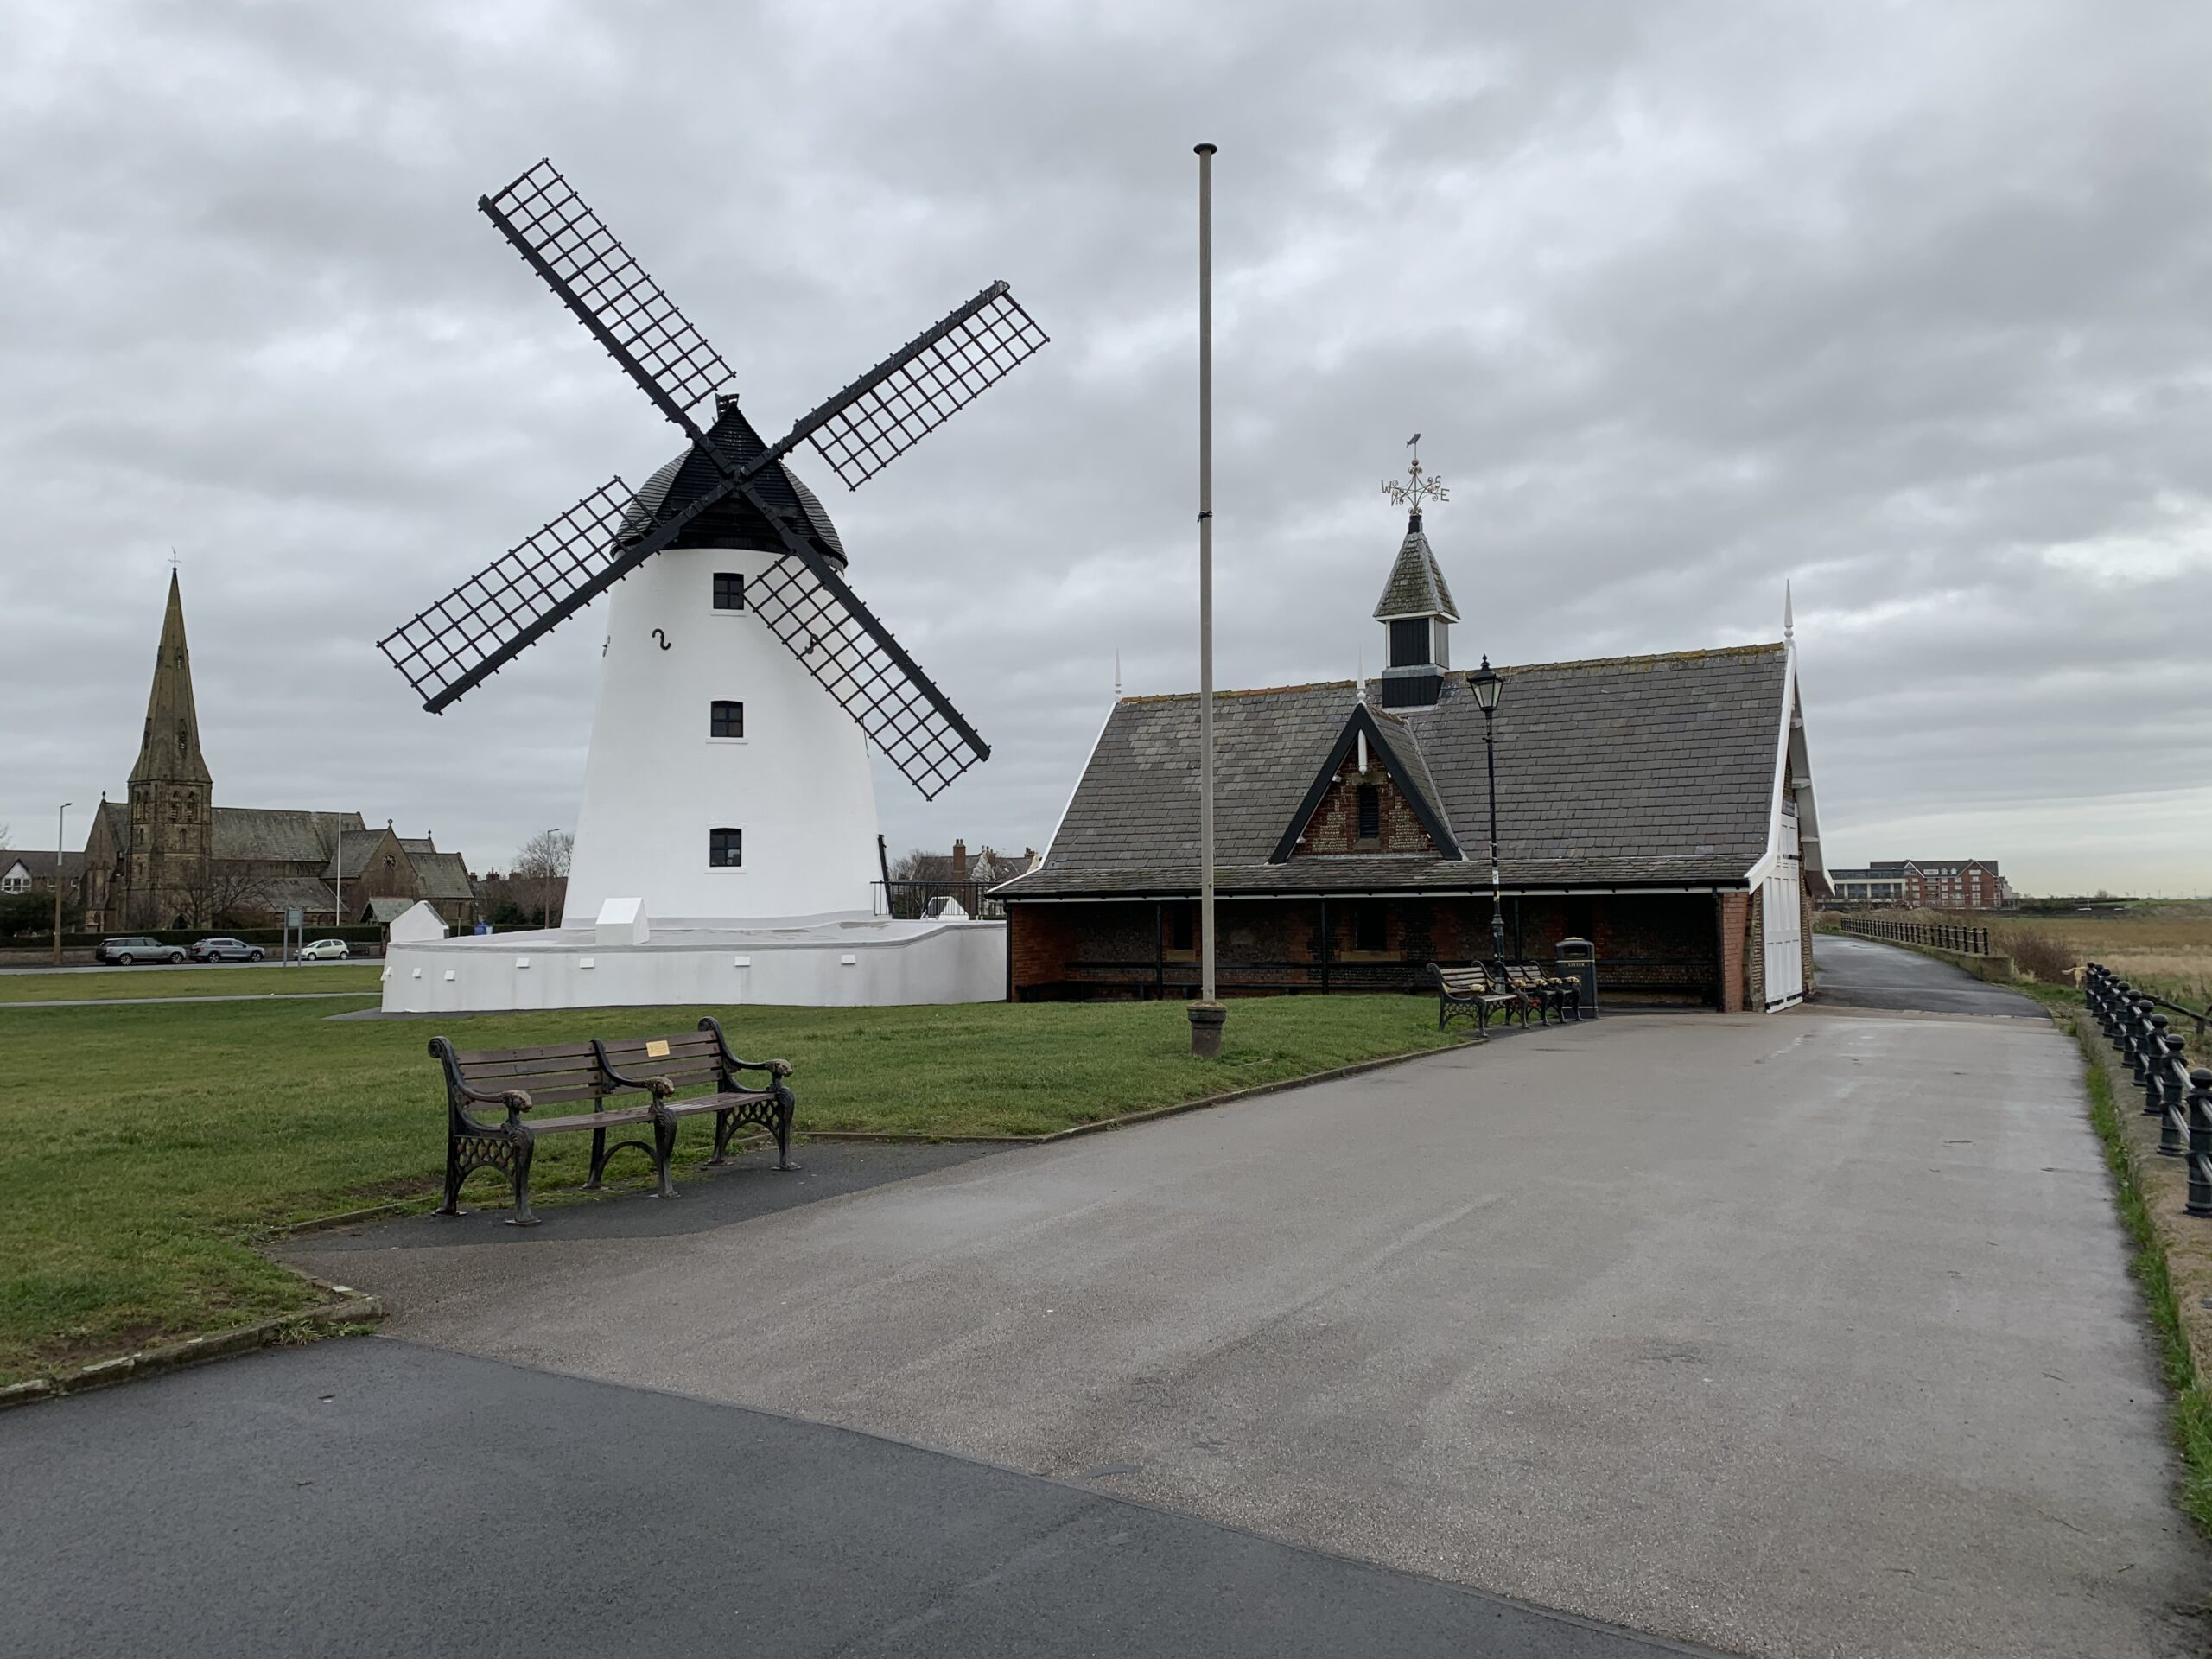 Lytham Old Lifeboat House and Chapman Lifeboat